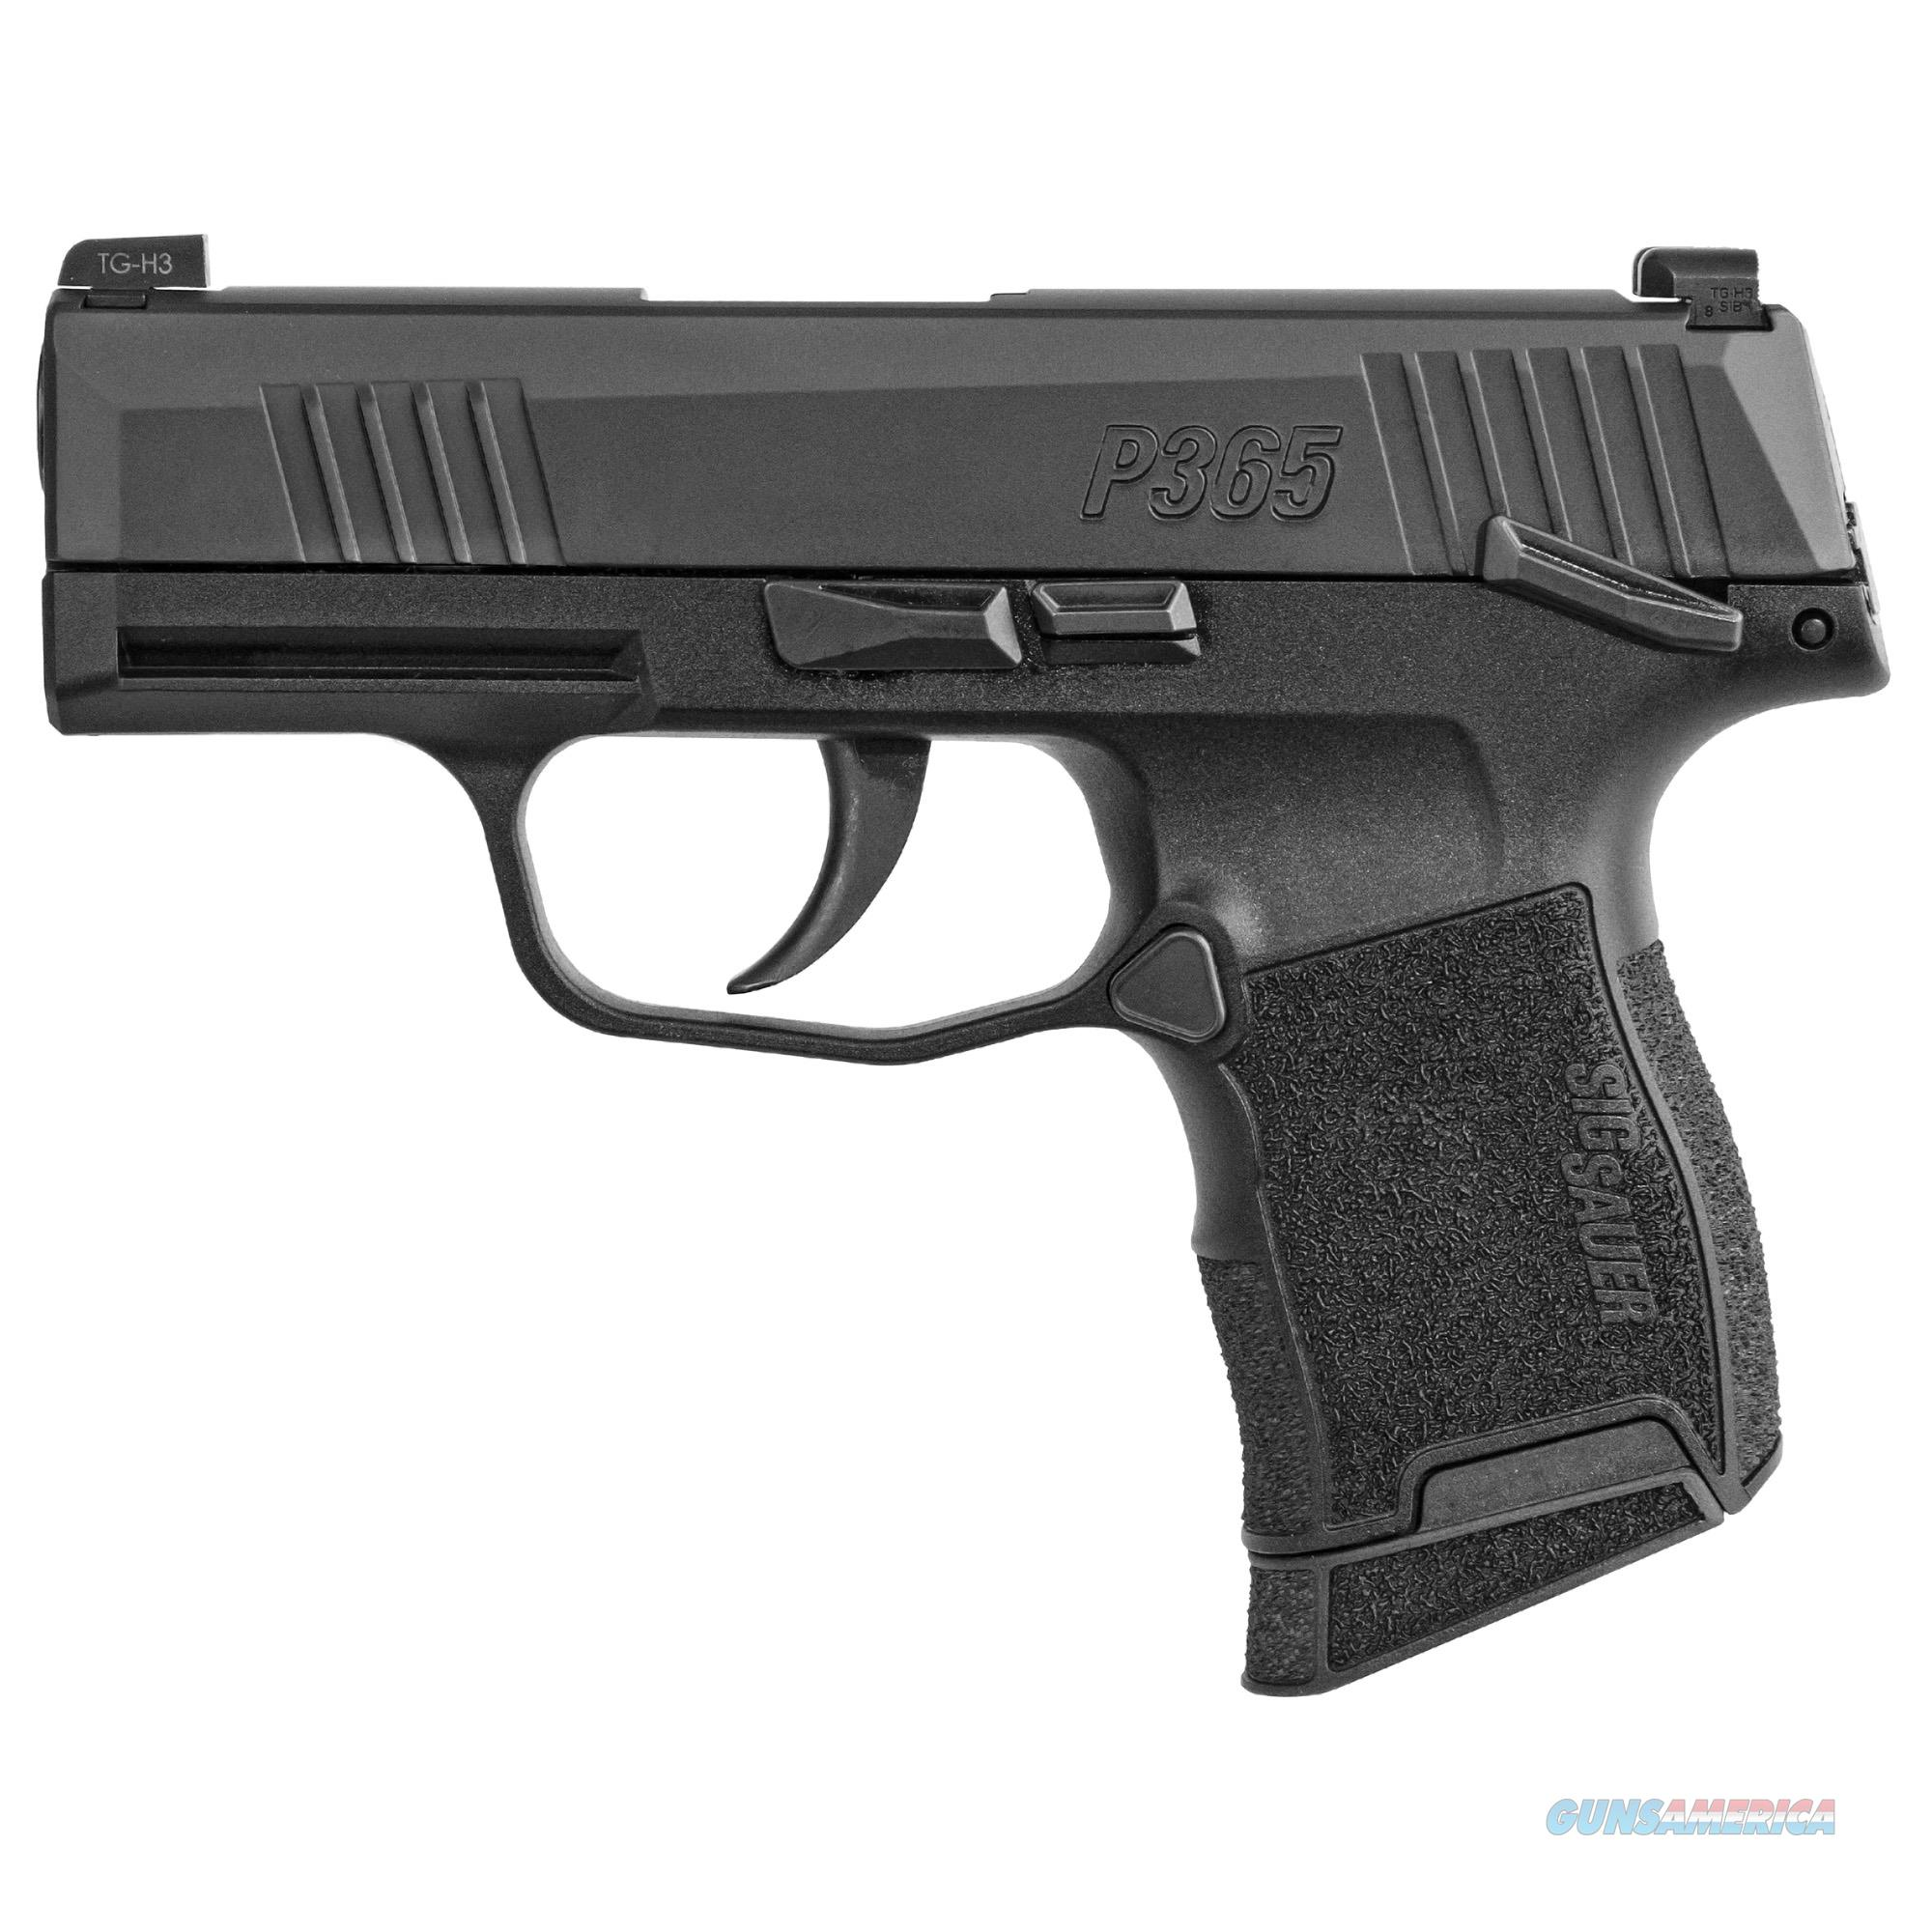 "Sig Sauer P365 9mm 3.1"" 10+1 Night Sights - New in Case!  Guns > Pistols > Sig - Sauer/Sigarms Pistols > P365"